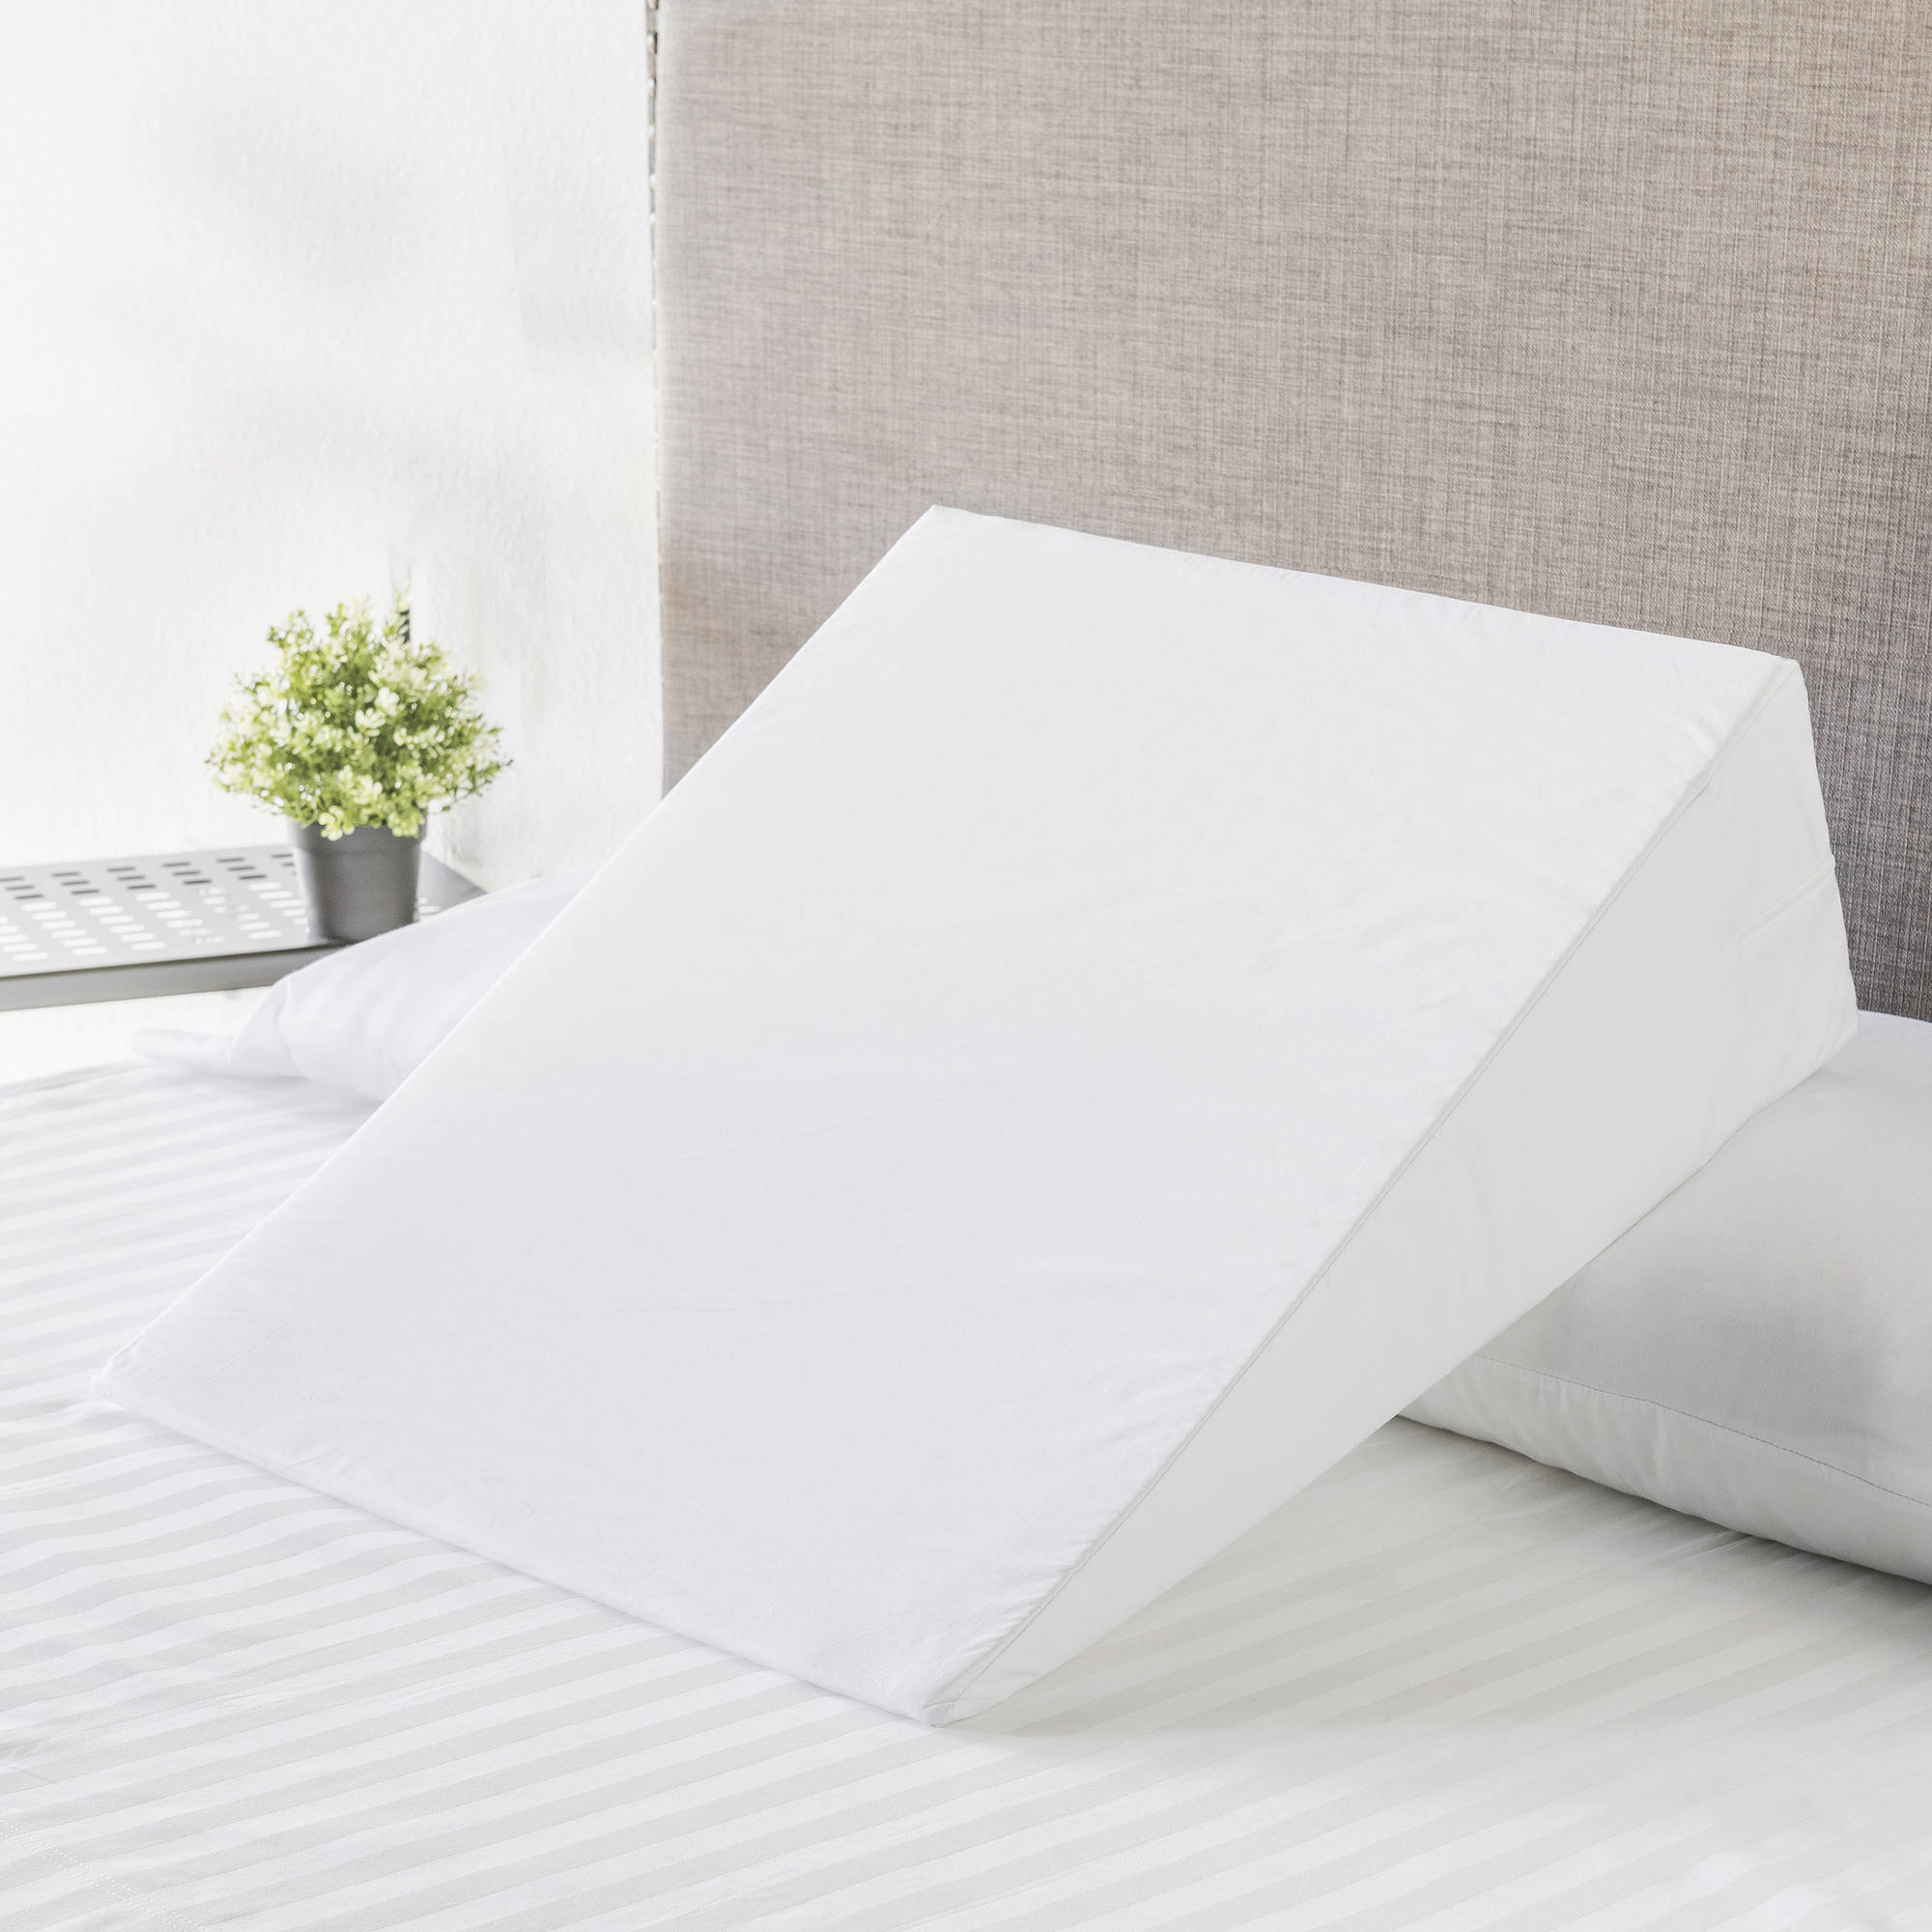 Mainstays MultiUse Bed Wedge Foam Pillow Walmartcom